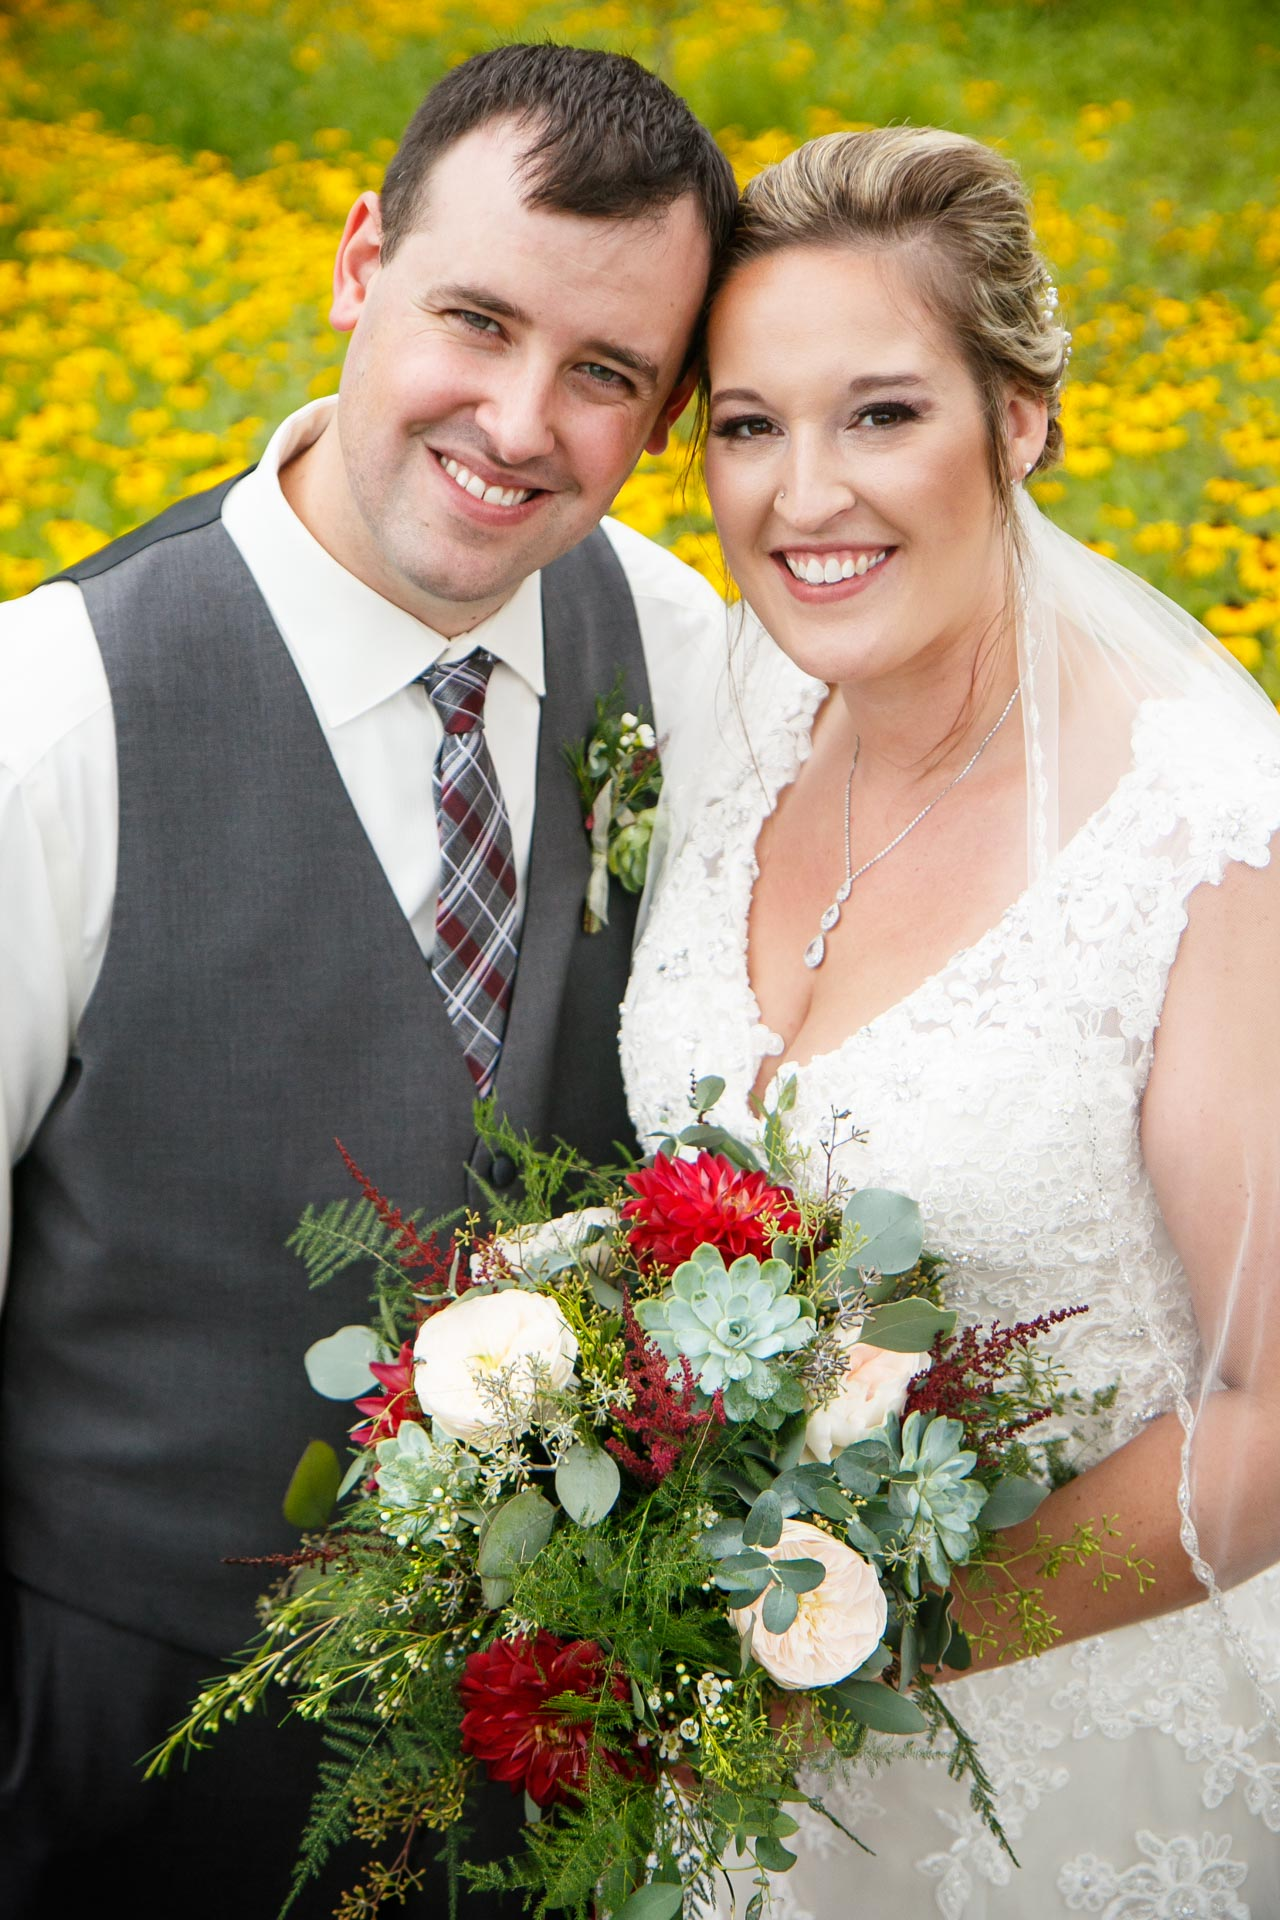 green-bay-botanical-gardens-wedding-adam-shea-photography-green-bay-appleton-neenah-photographer-17.jpg